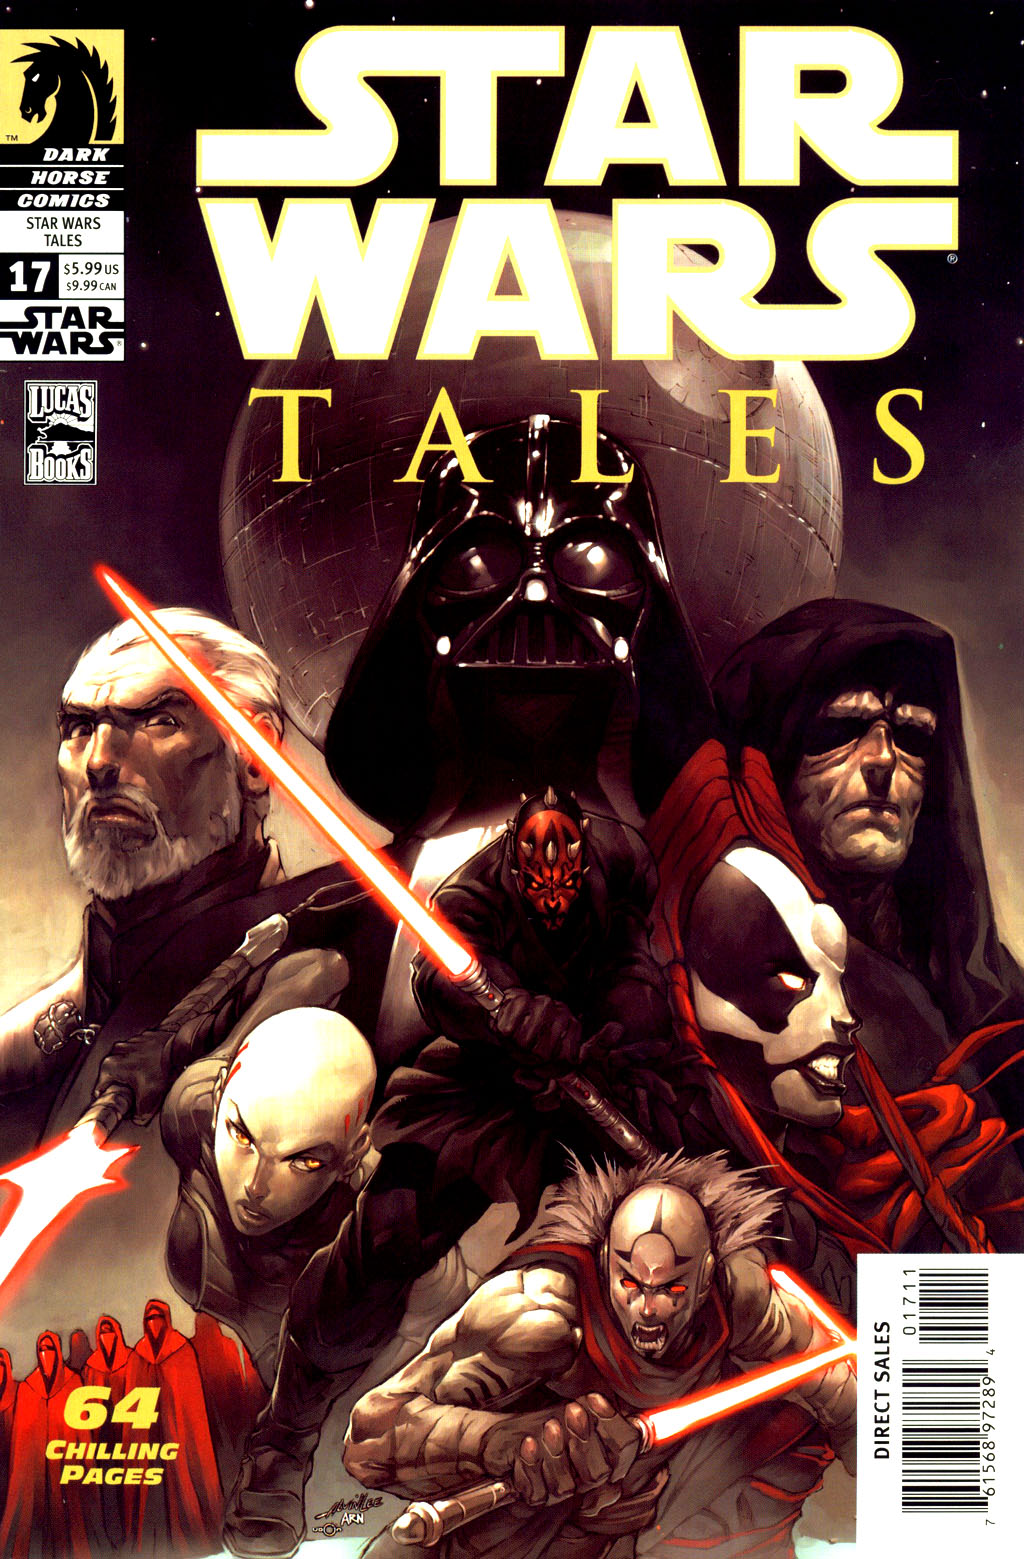 Star Wars Tales: Phantom Menaces